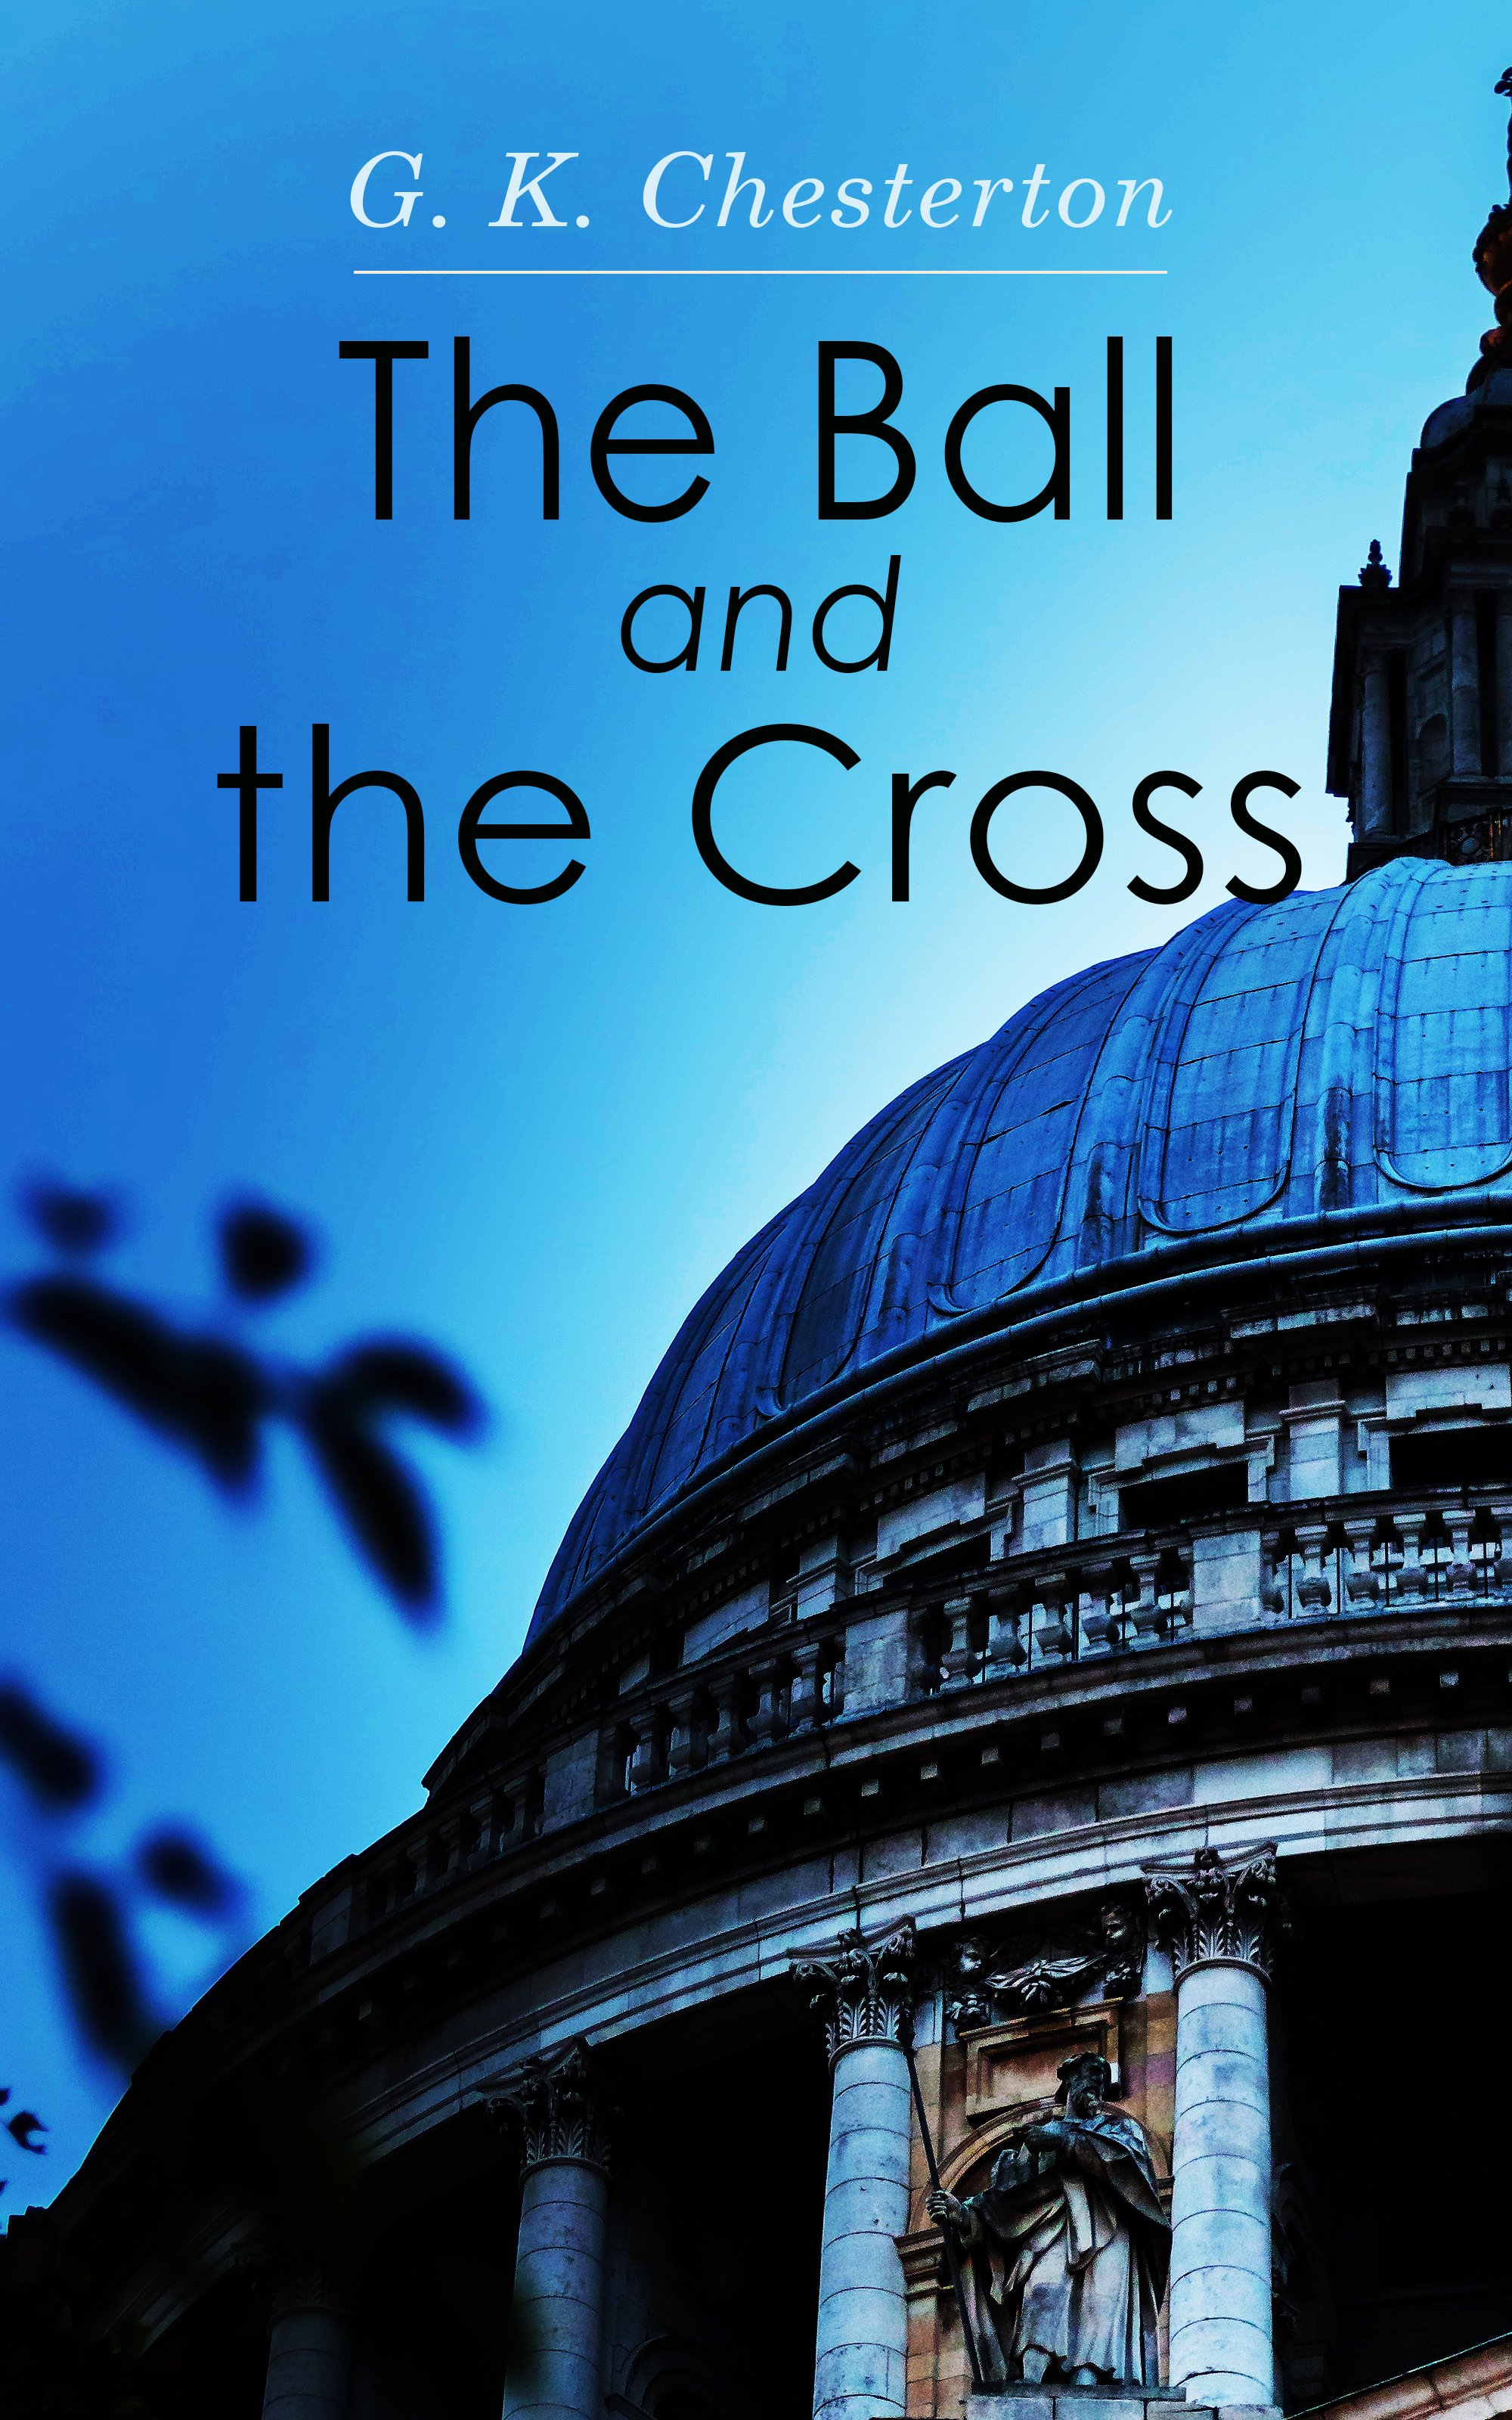 G. K. Chesterton The Ball and the Cross g k chesterton the napoleon of notting hill